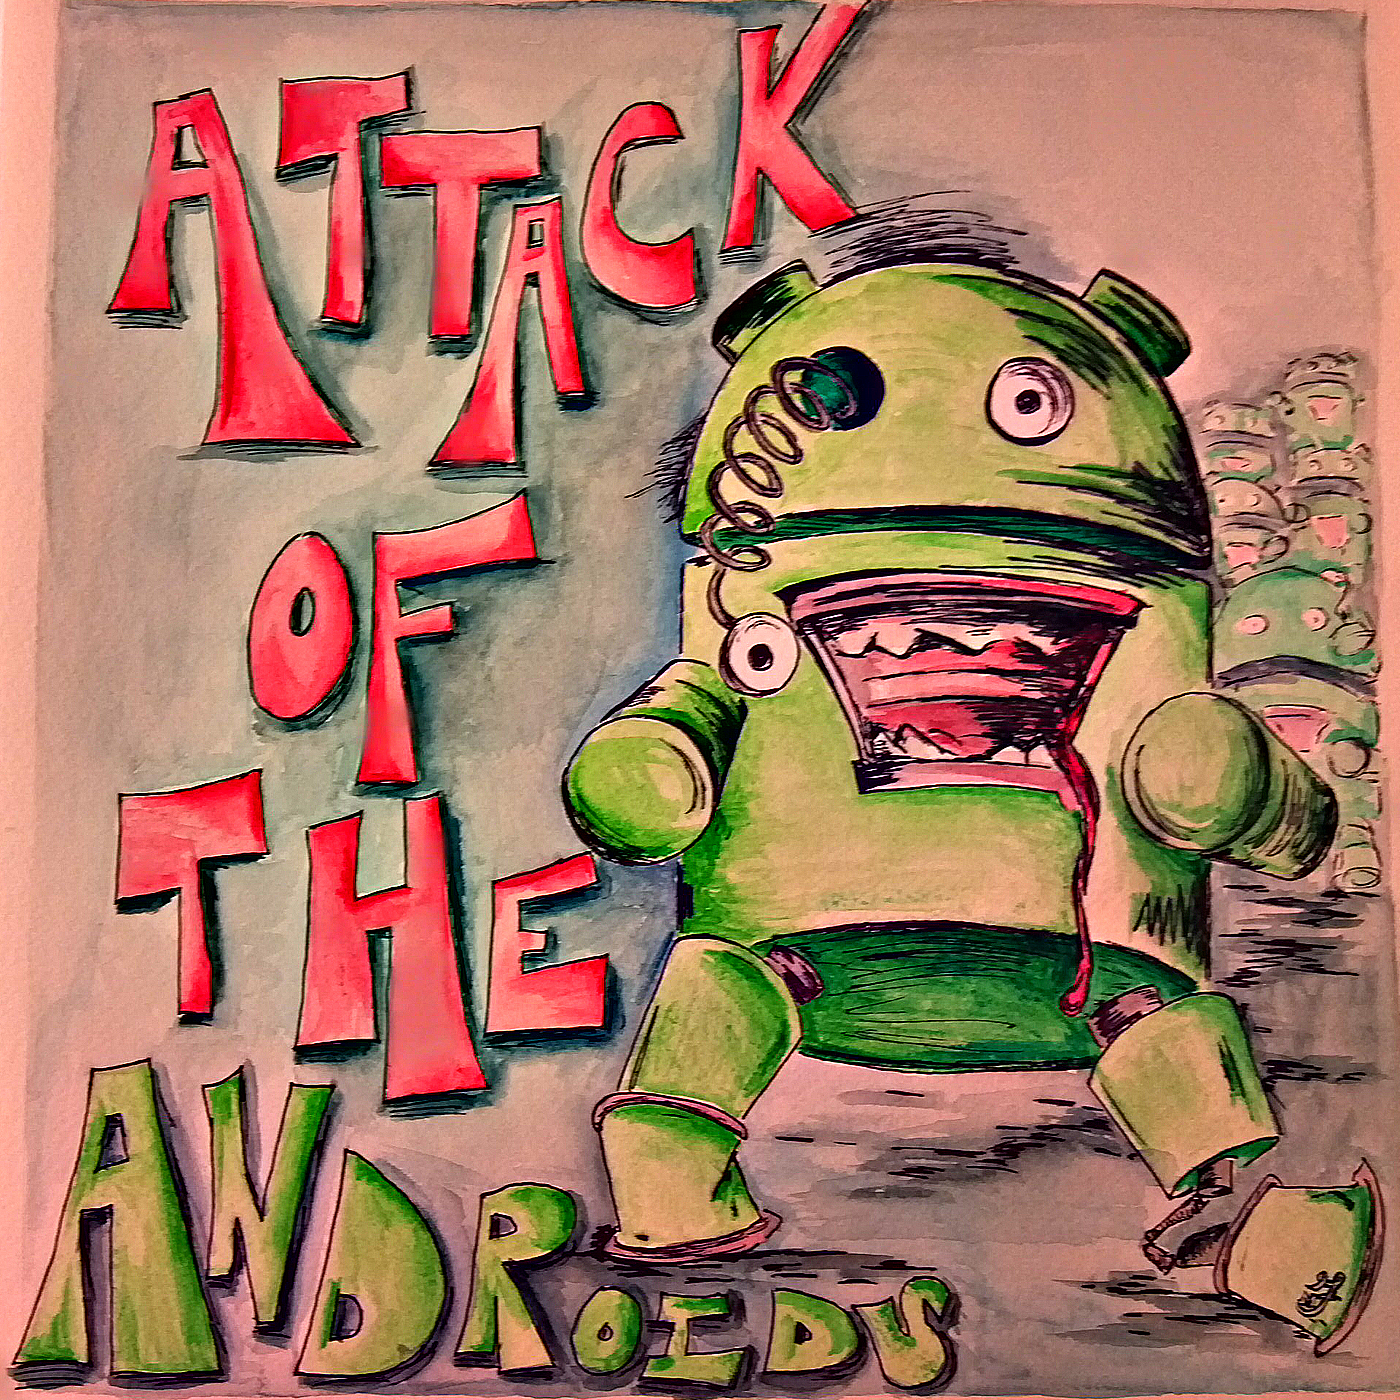 Attack of the Androids